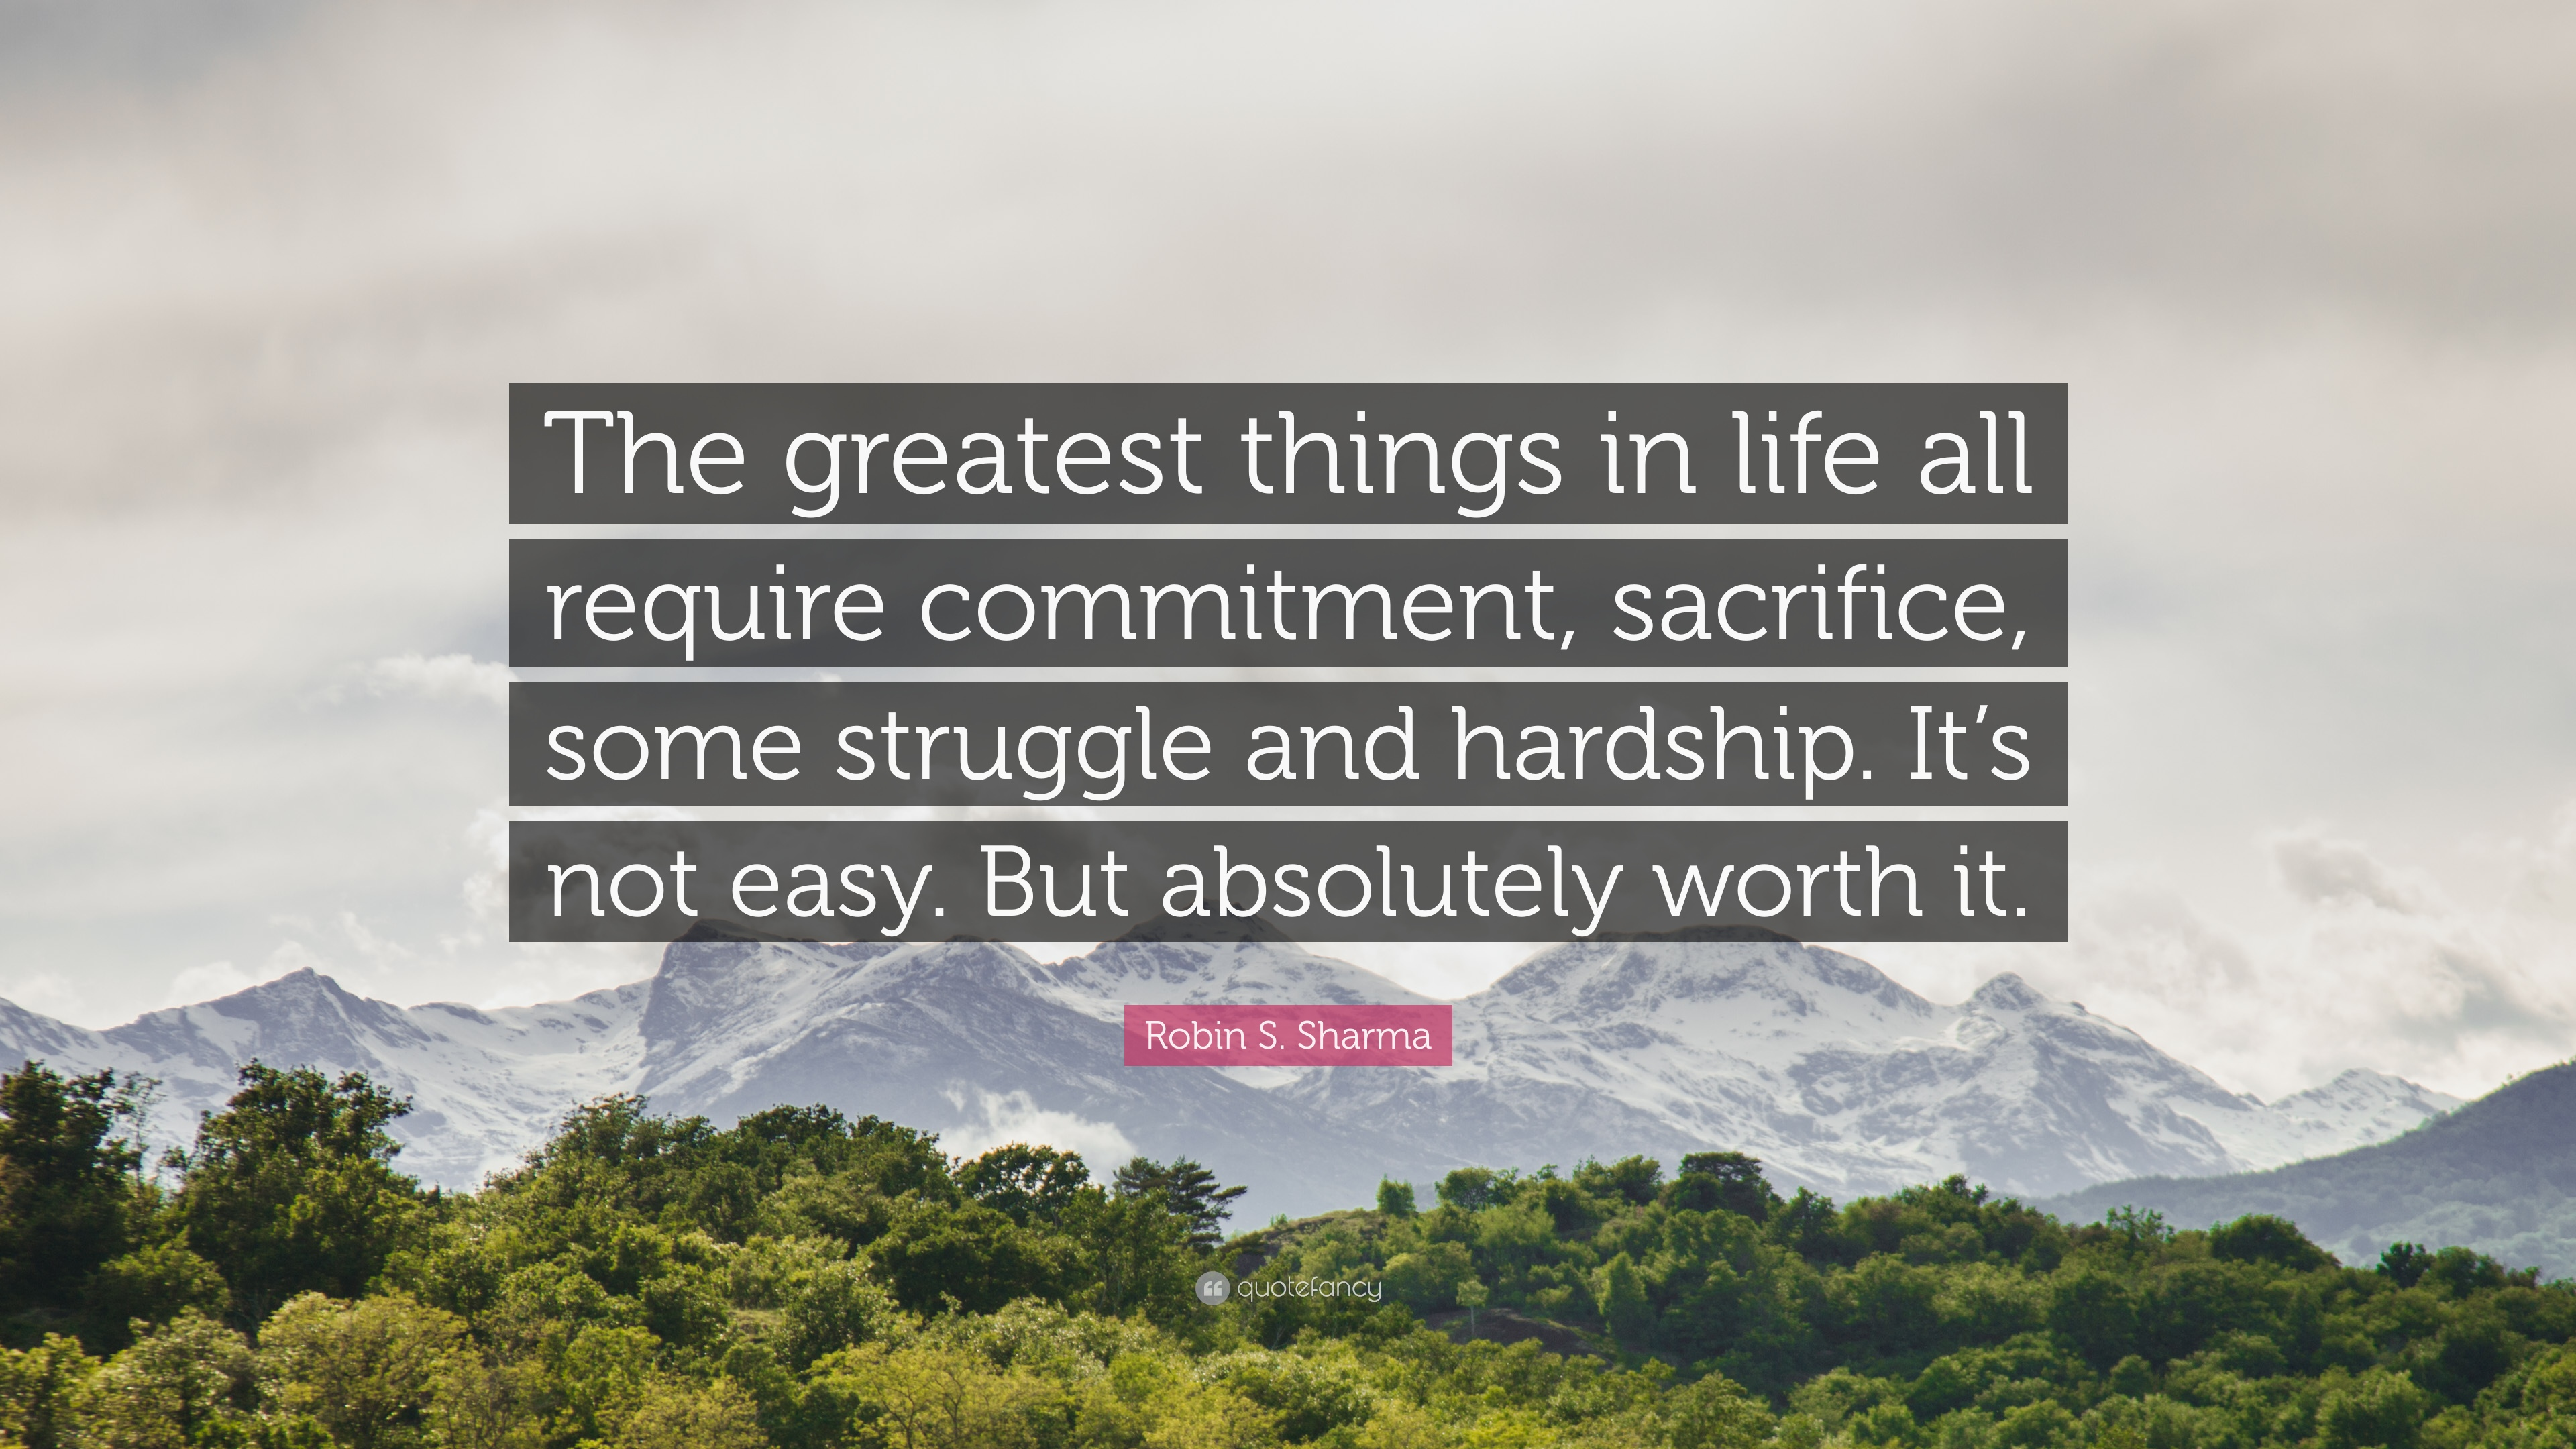 Robin S Sharma Quote The Greatest Things In Life All Require